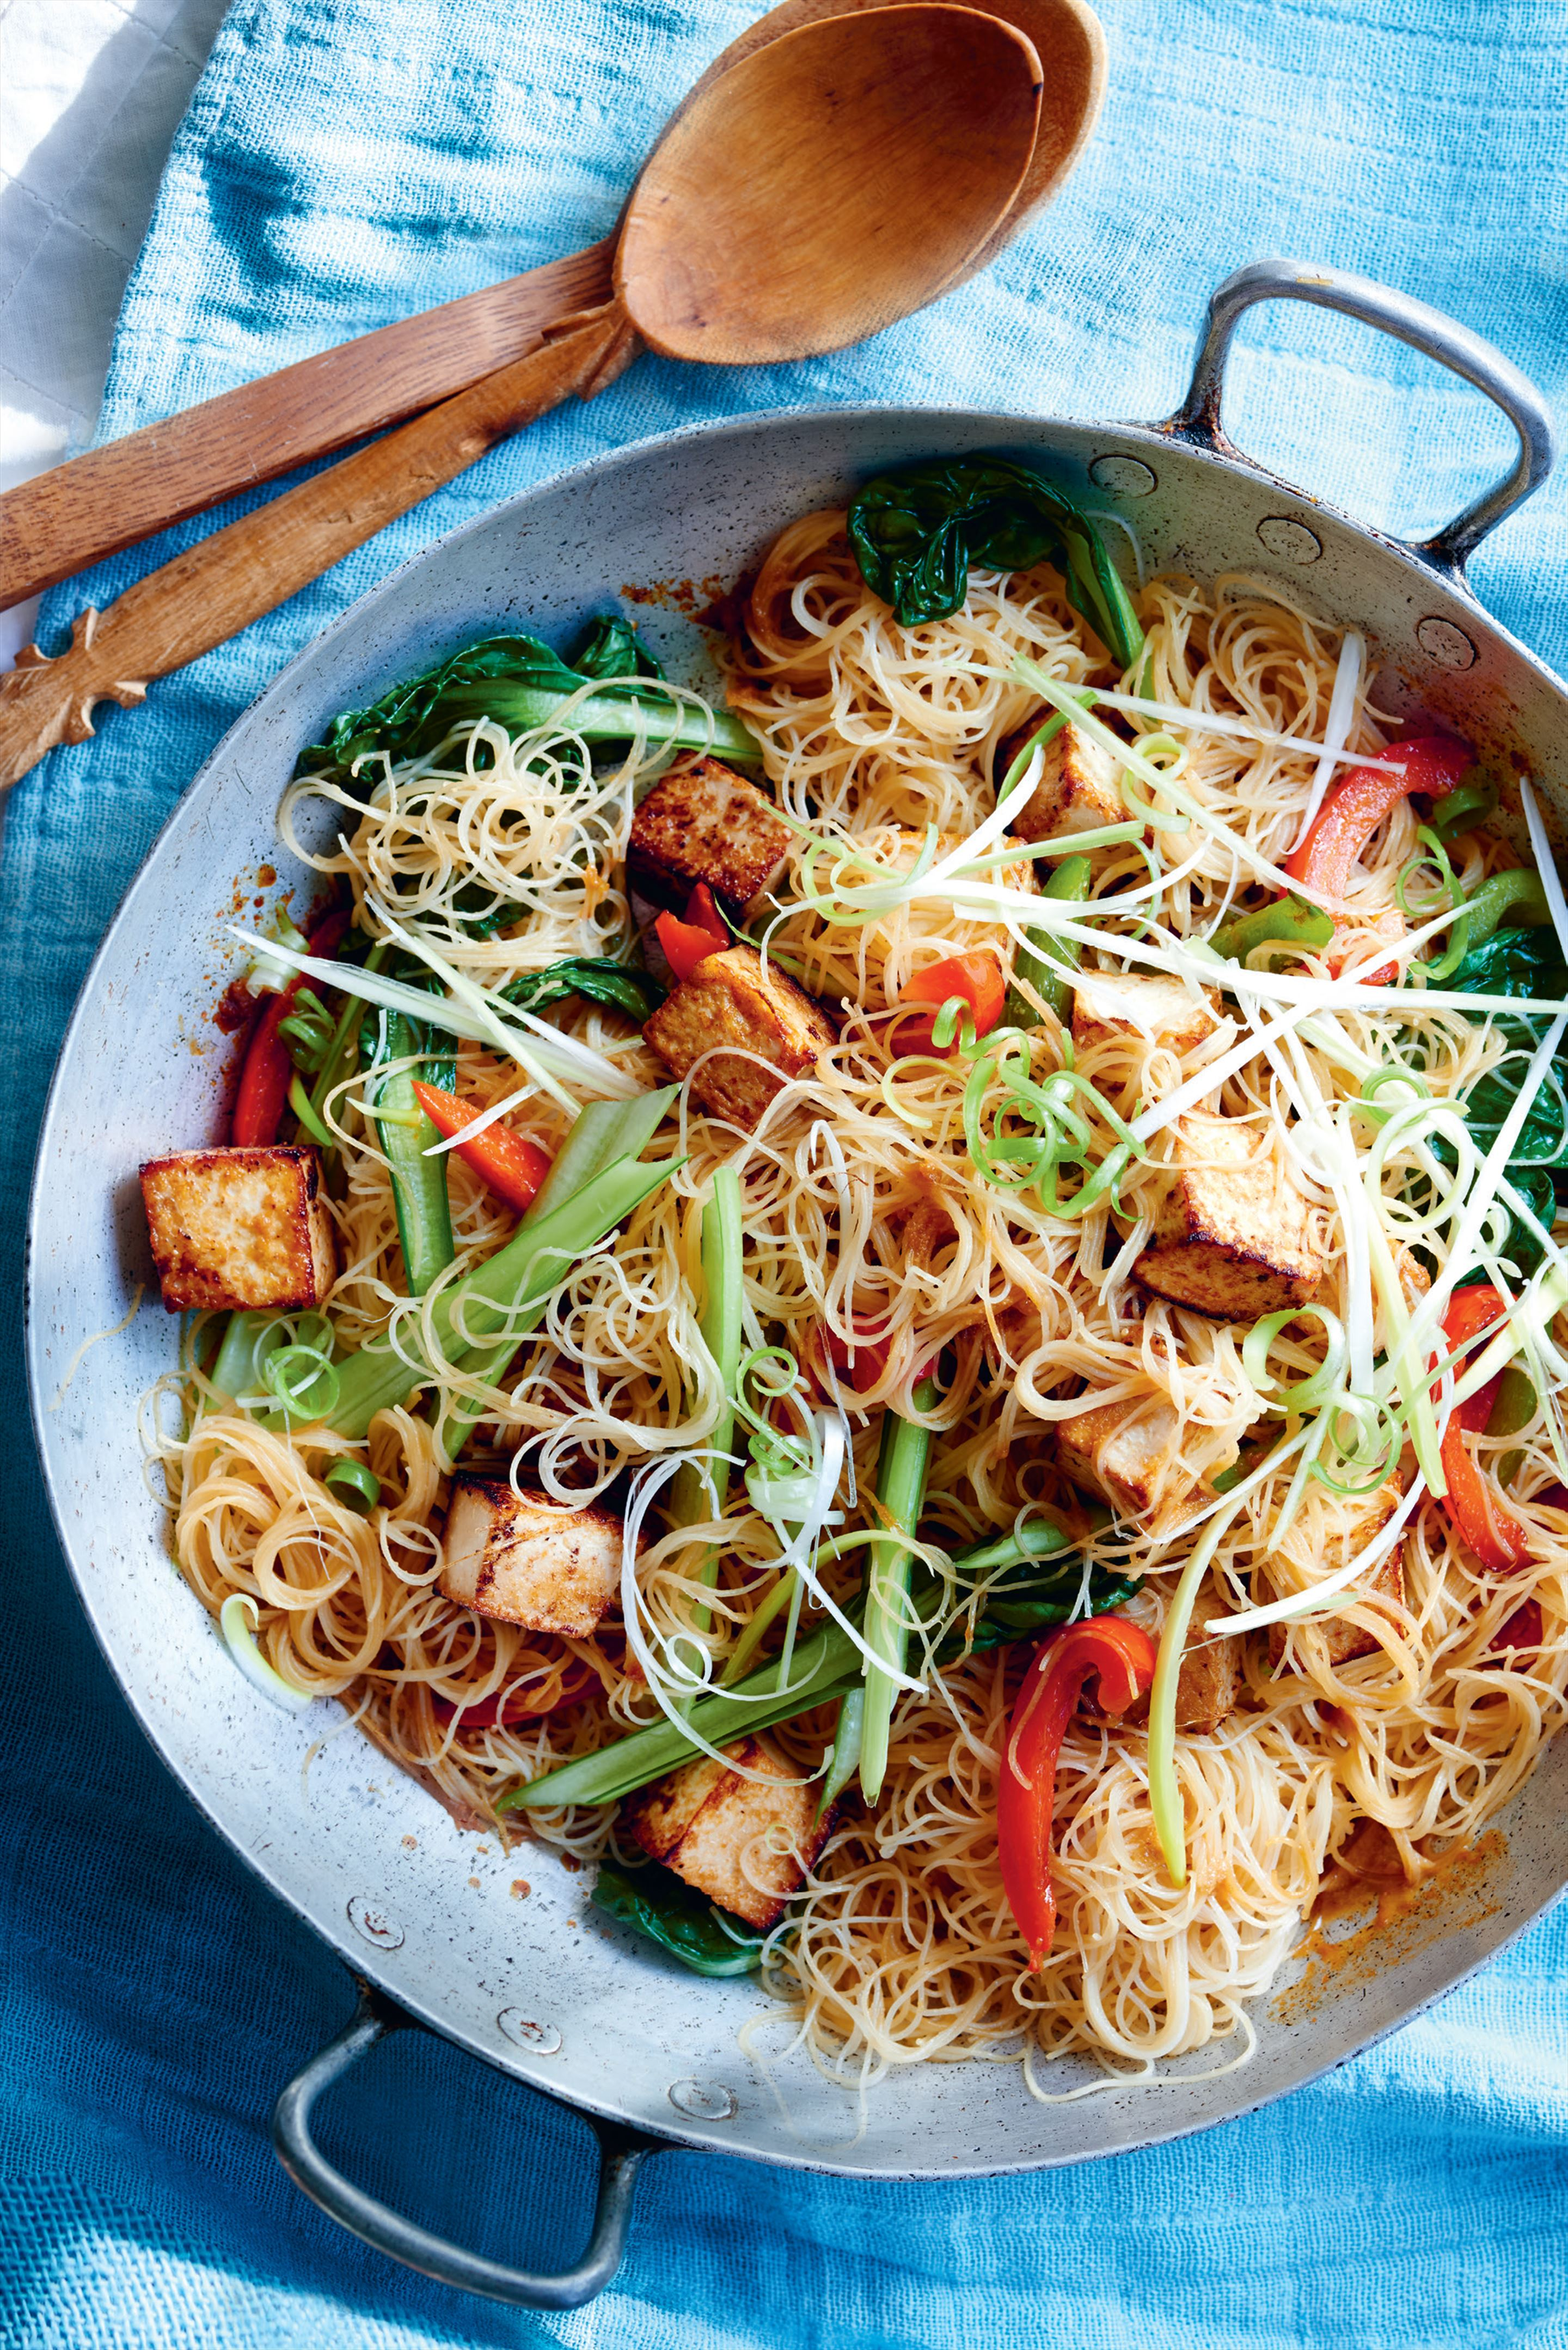 Marinated tofu stir-fry with kelp noodles and Asian greens